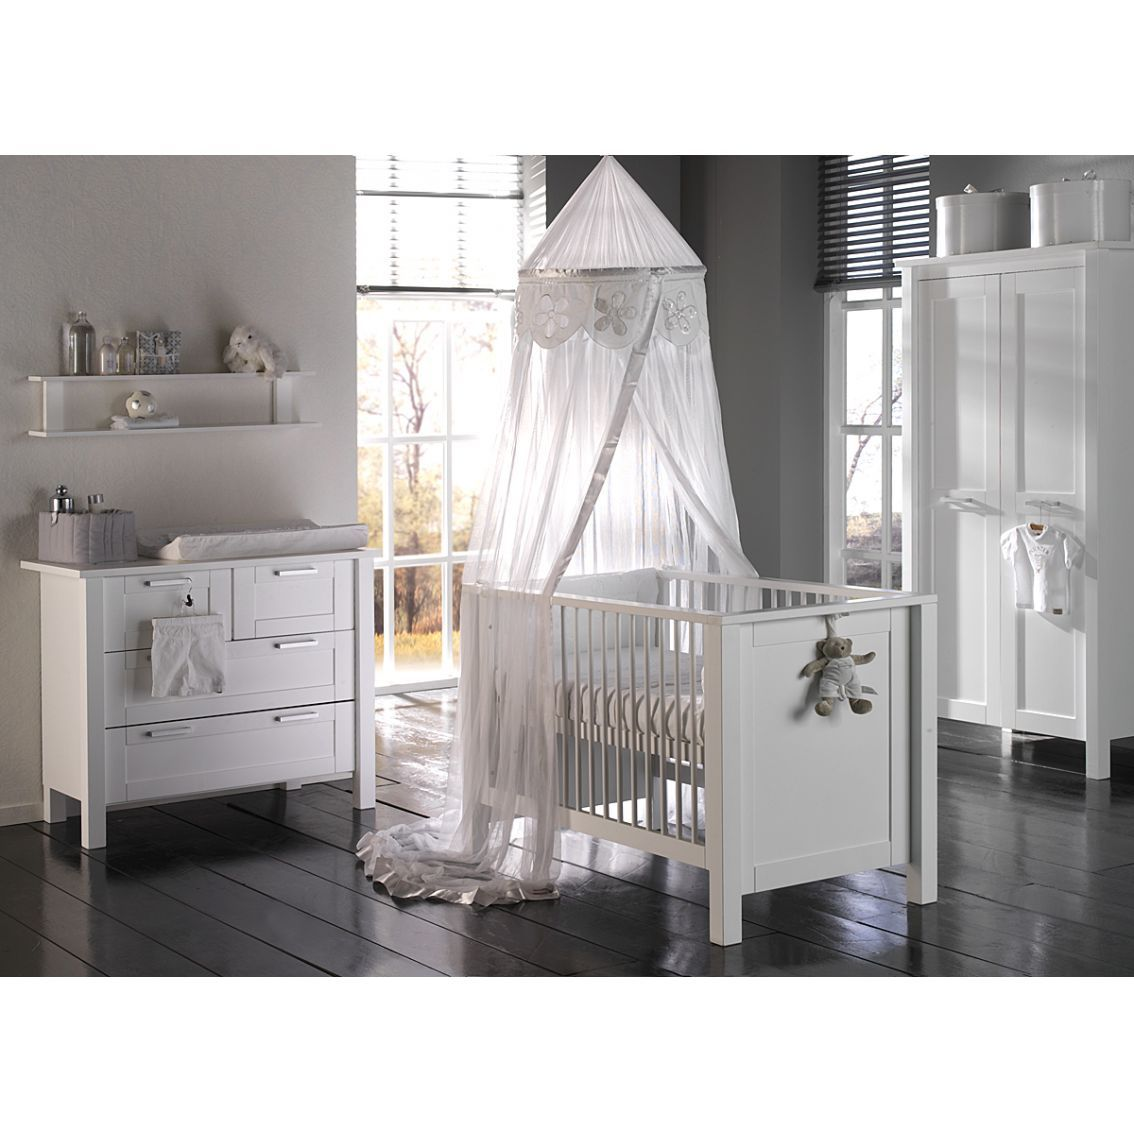 Boori Country Collection Boori Nursery Furniture Set   Boori